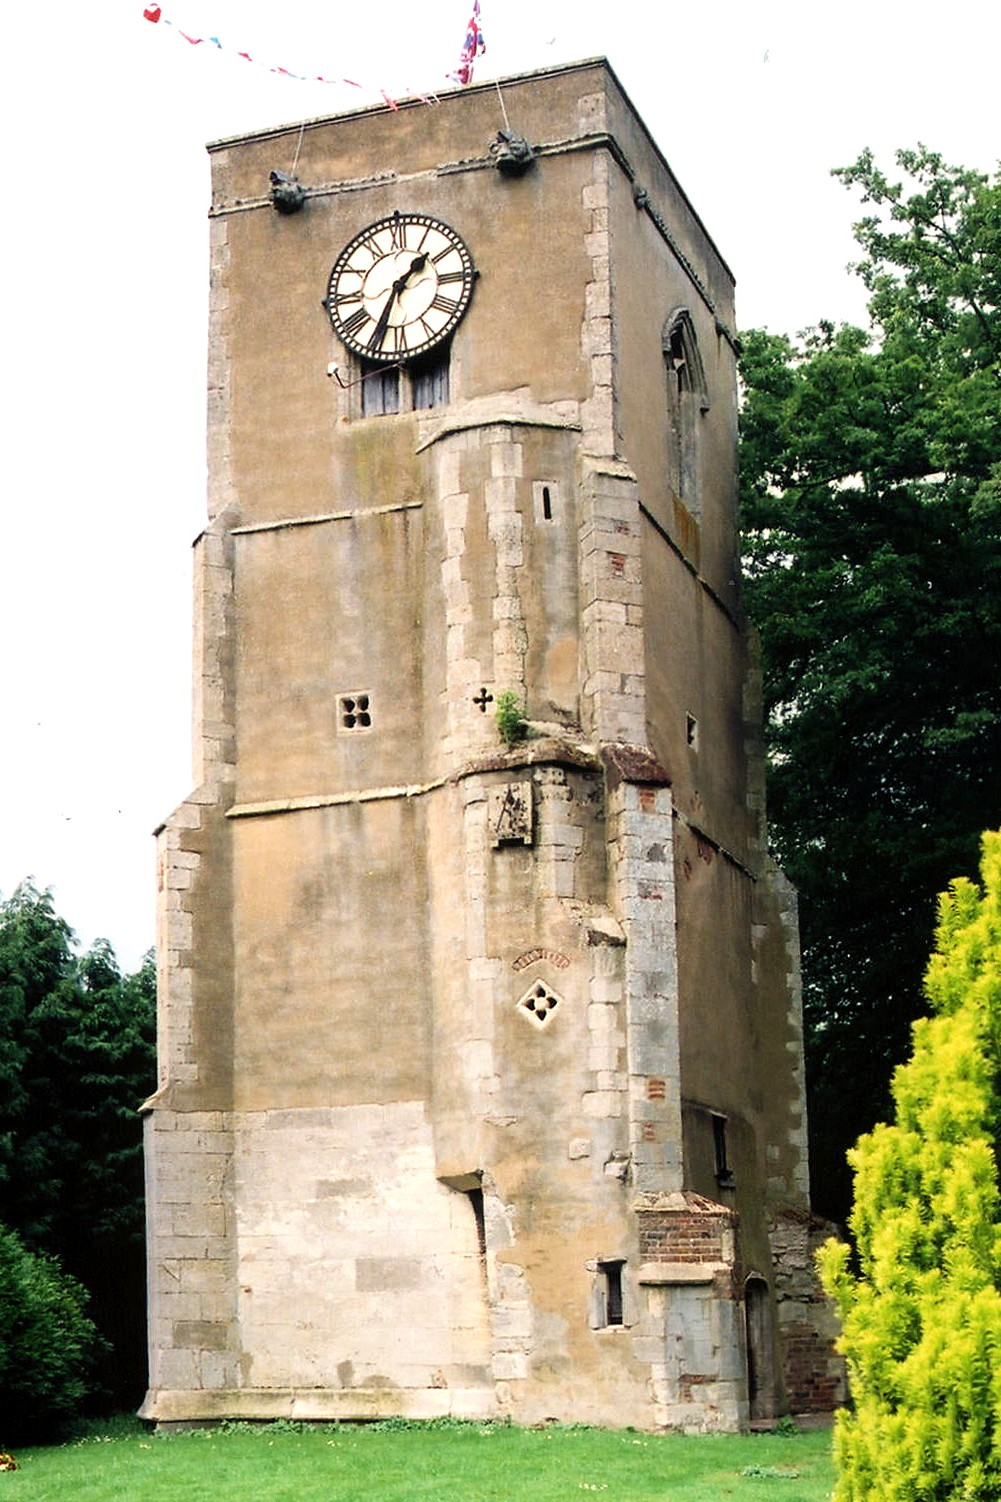 St. James Church tower